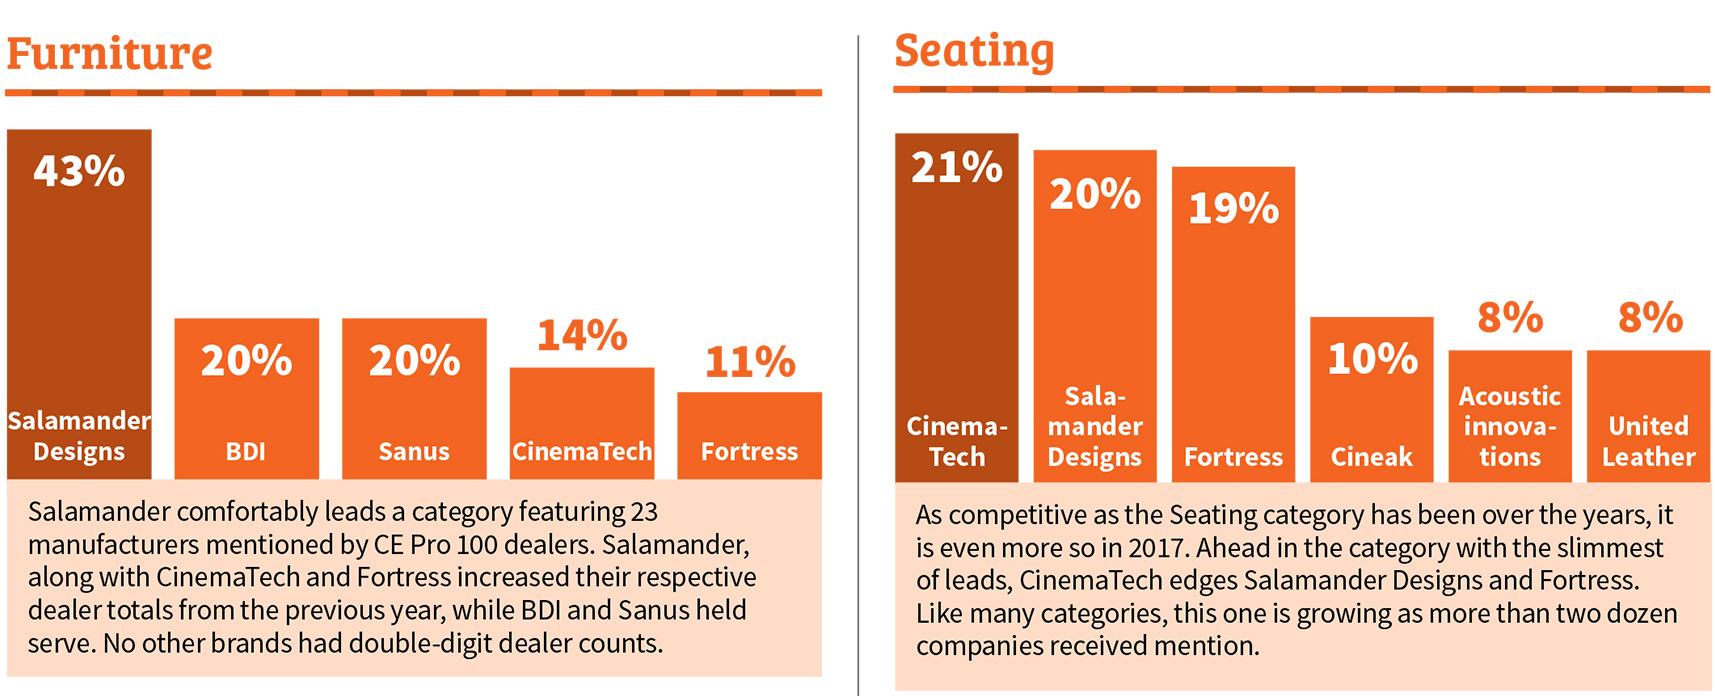 CE Pro Brand Leader For Furniture And 2nd For Theater Seating